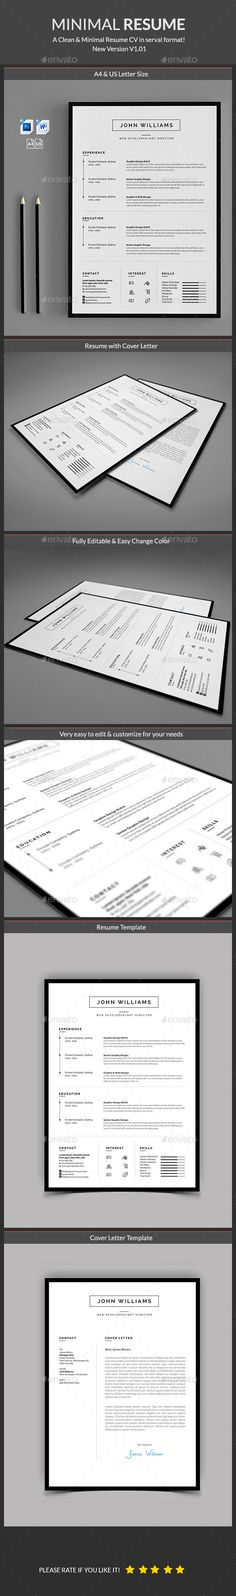 Buy Resume by Classicdesignp on GraphicRiver. Resume Word Template / CV Template with a super clean and modern look. Clean Resume Template page designs are easy to. Resume Layout, Resume Tips, Resume Writing, Resume Design, Resume Examples, Resume 2017, One Page Resume, Resume Format, Portfolio Web